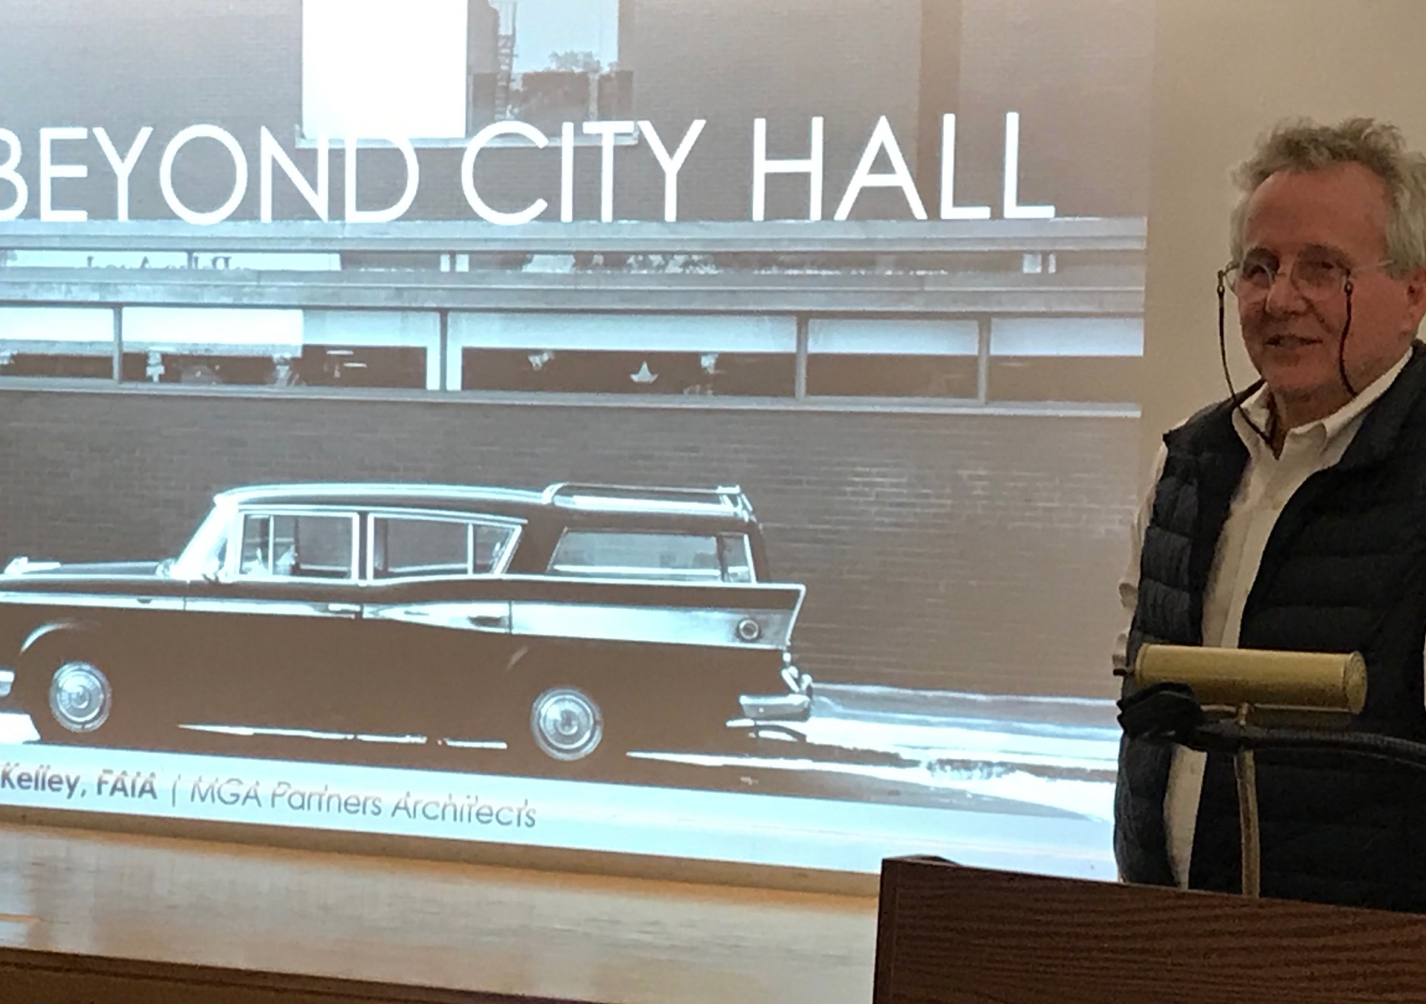 Dan Kelley, principal in MGA Partners, the Philadelphia architectural firm that succeeded the award-winning Mitchell/Giurgola firm when they moved to Australia. Kelley gave a presentation at the South End library on March 12 about the architectural history of the South End branch.